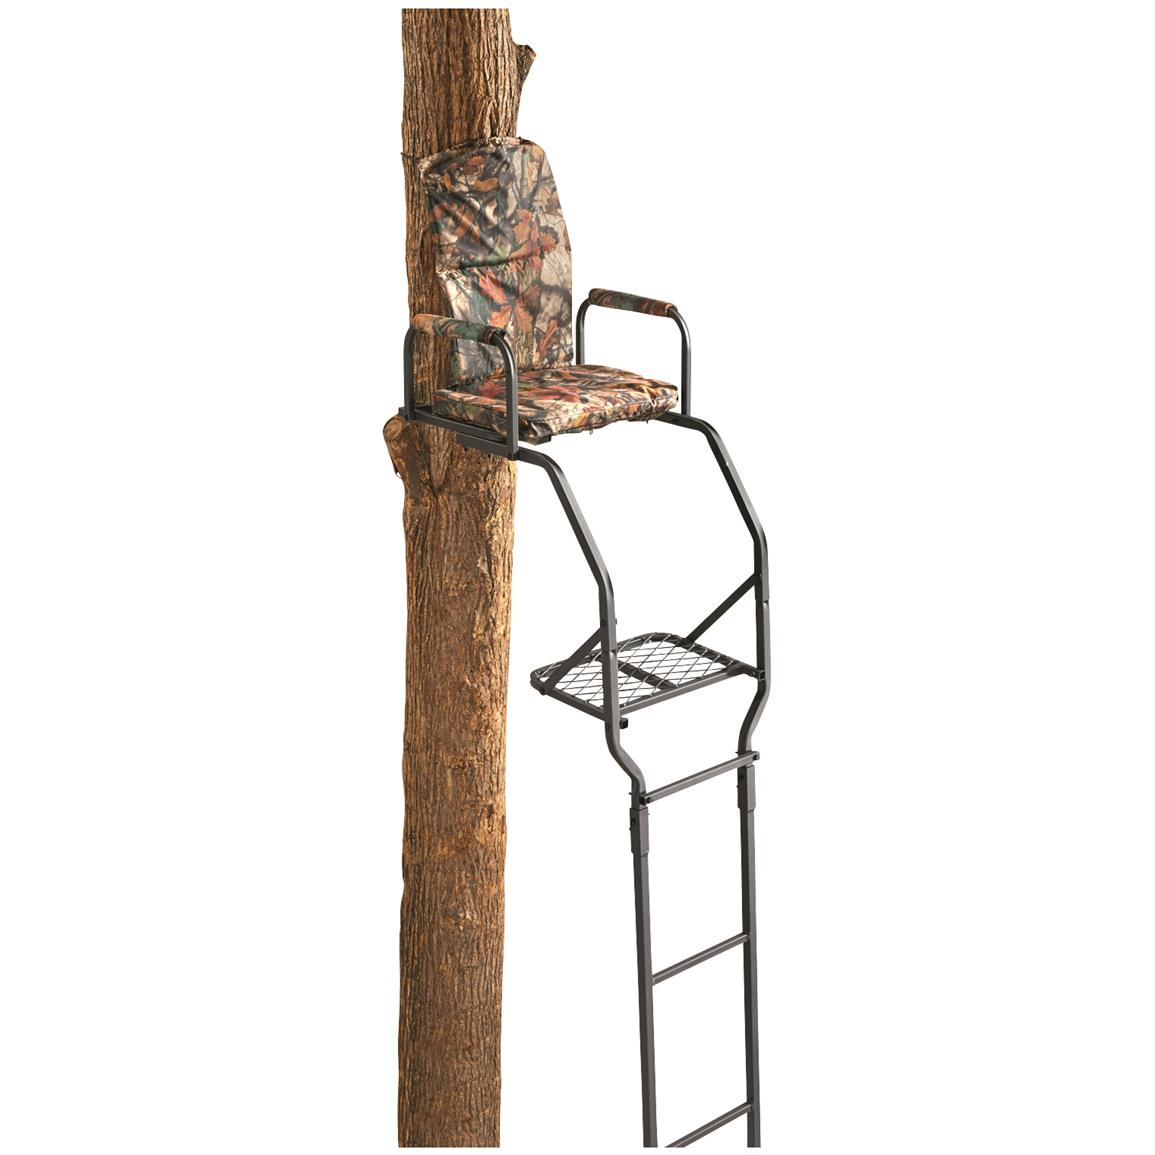 Guide Gear 16' Basic Ladder Tree Stand • Padded Camo seat and armrests